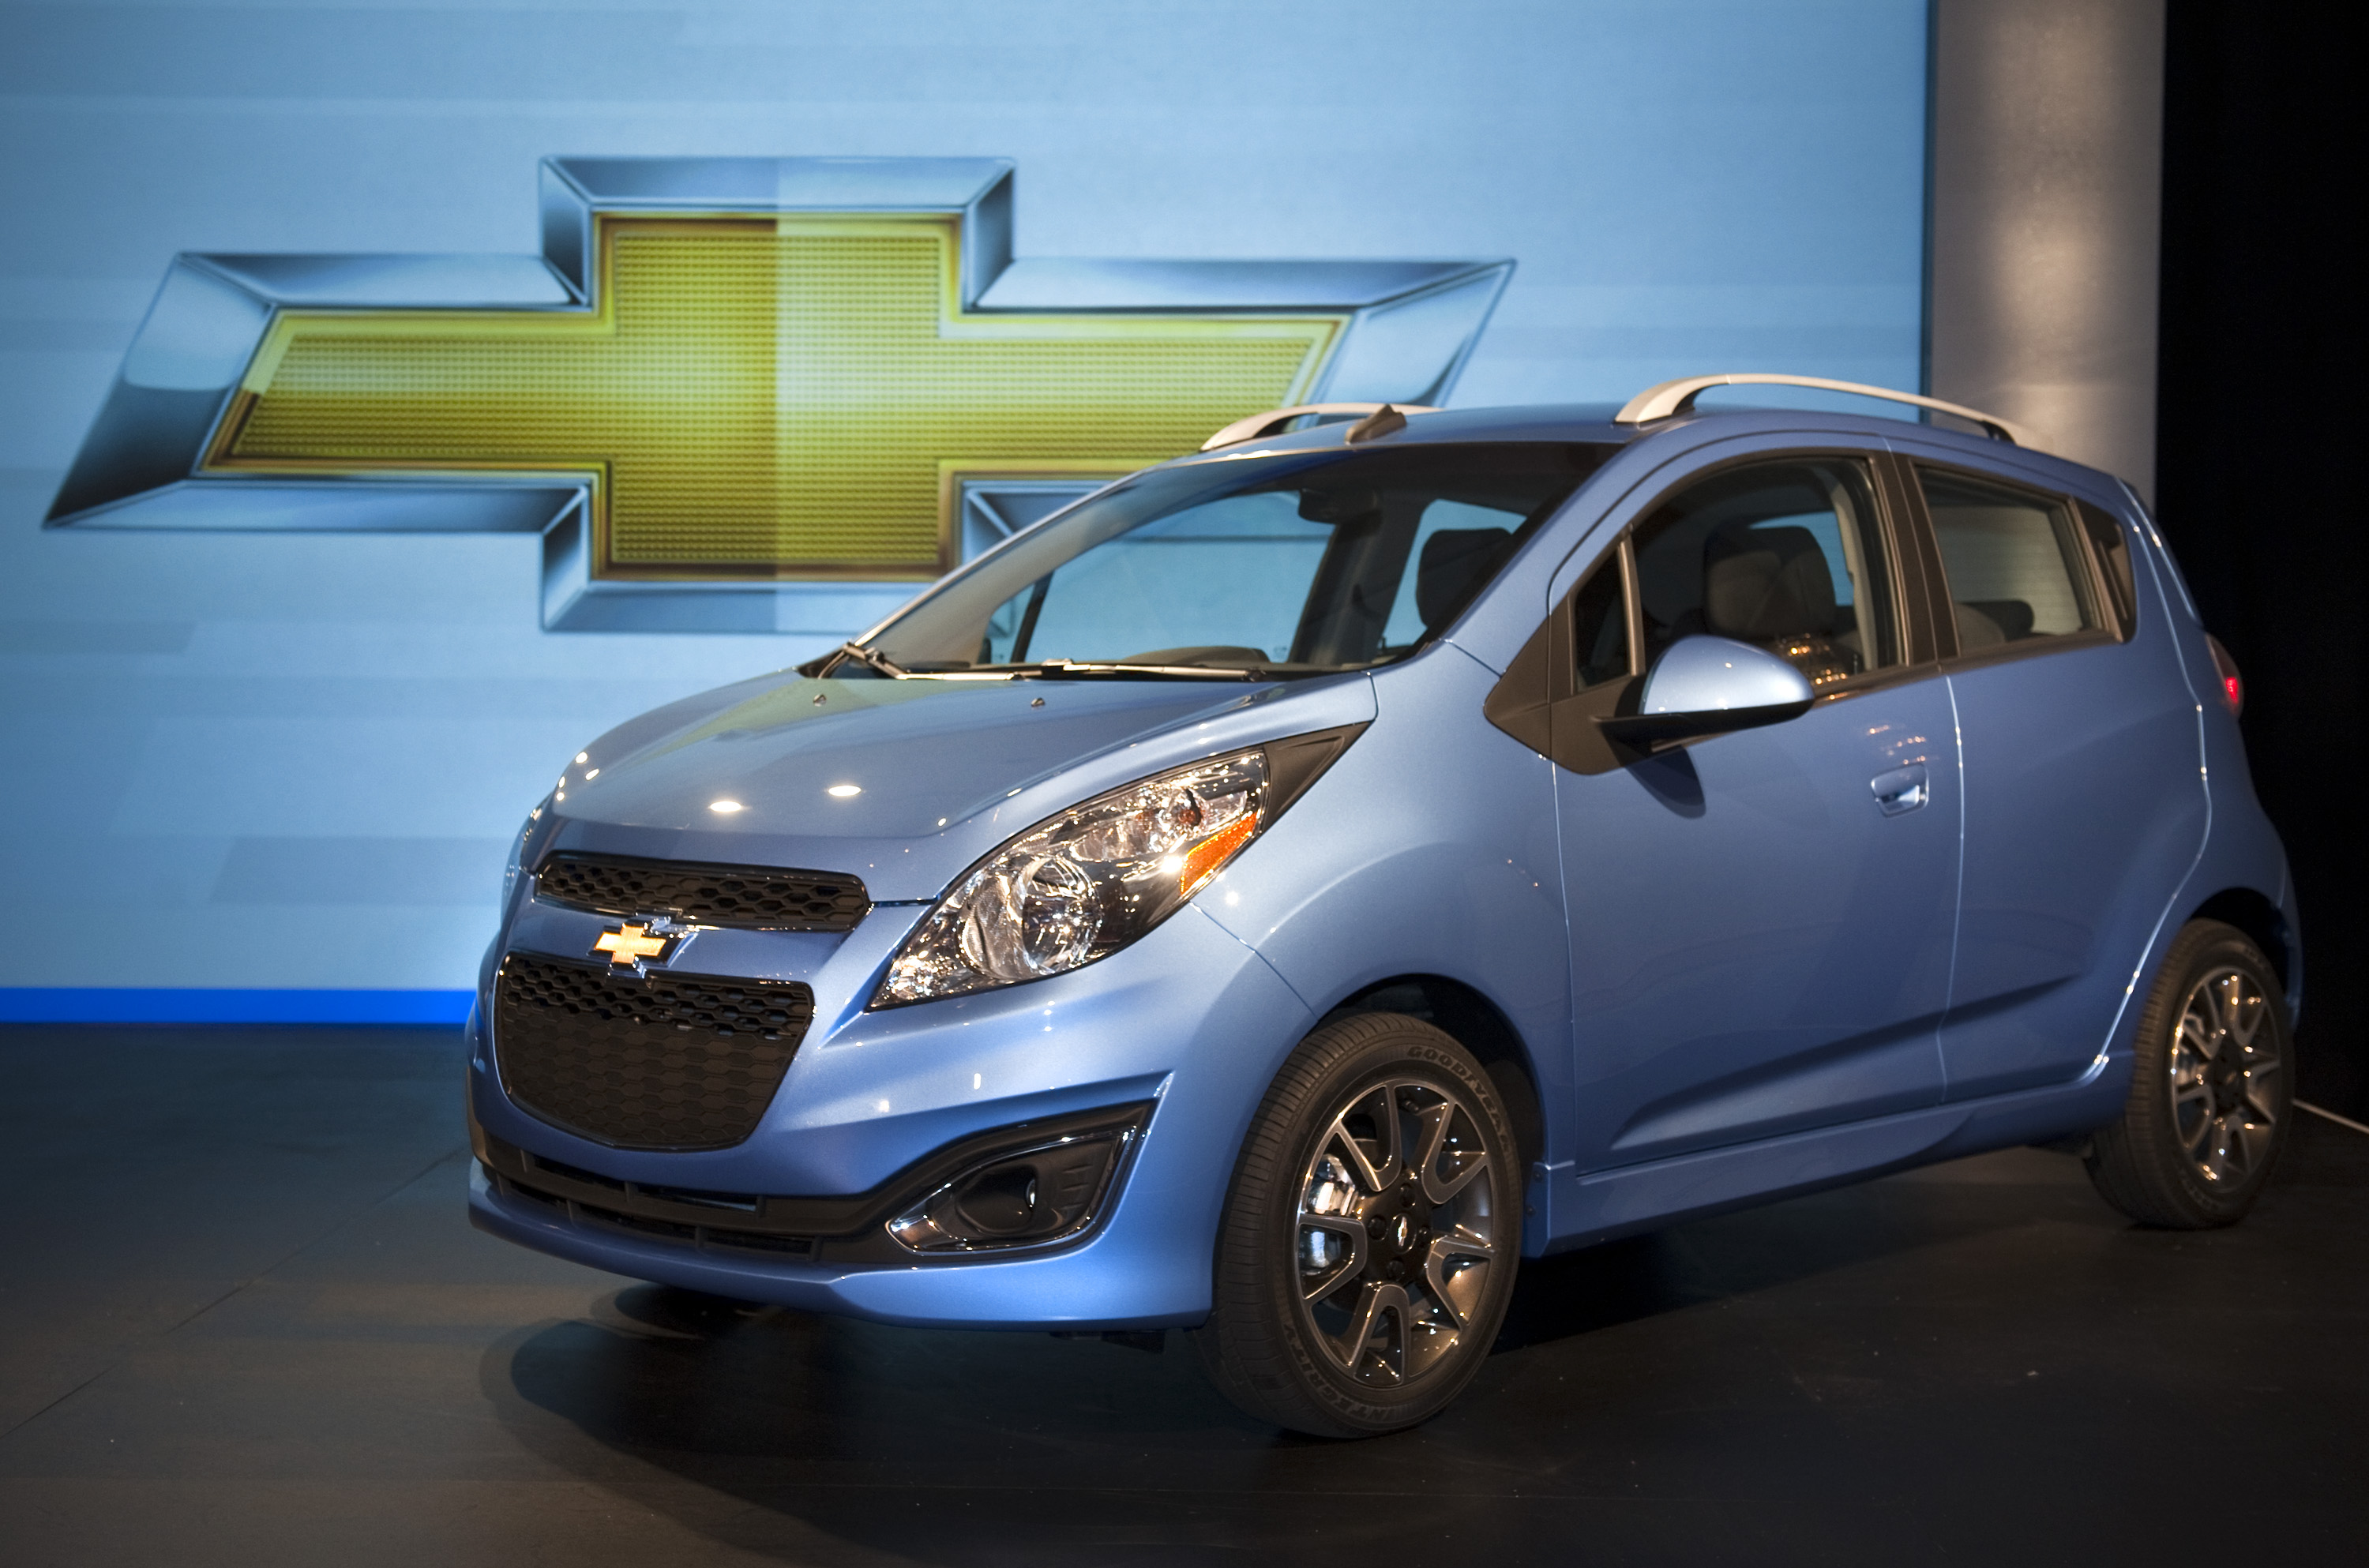 2013 chevrolet spark minicar unveiled in detroit october 2011 100366673. Black Bedroom Furniture Sets. Home Design Ideas